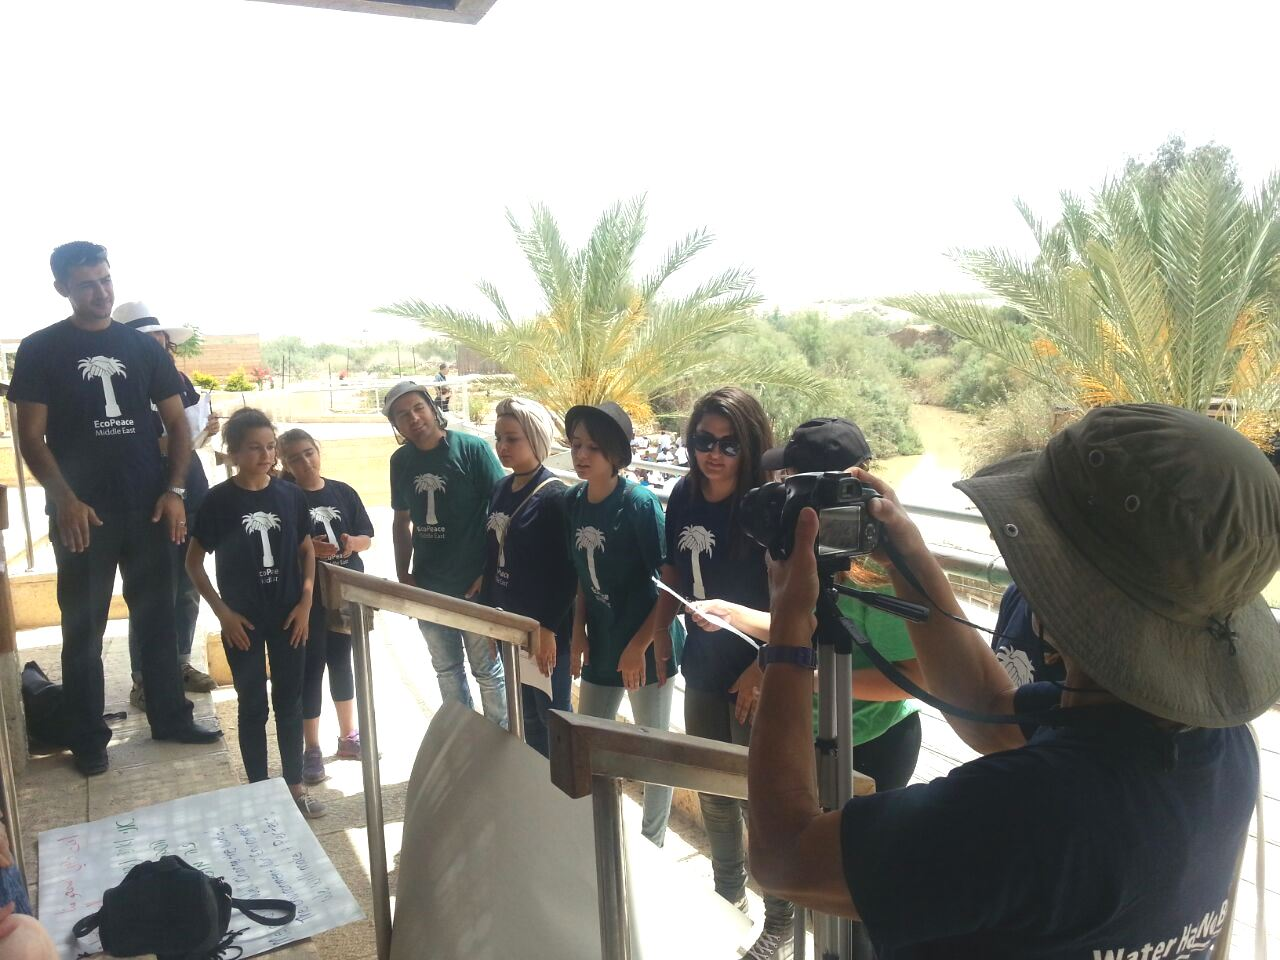 Youth at Baptism Site We Will Change It